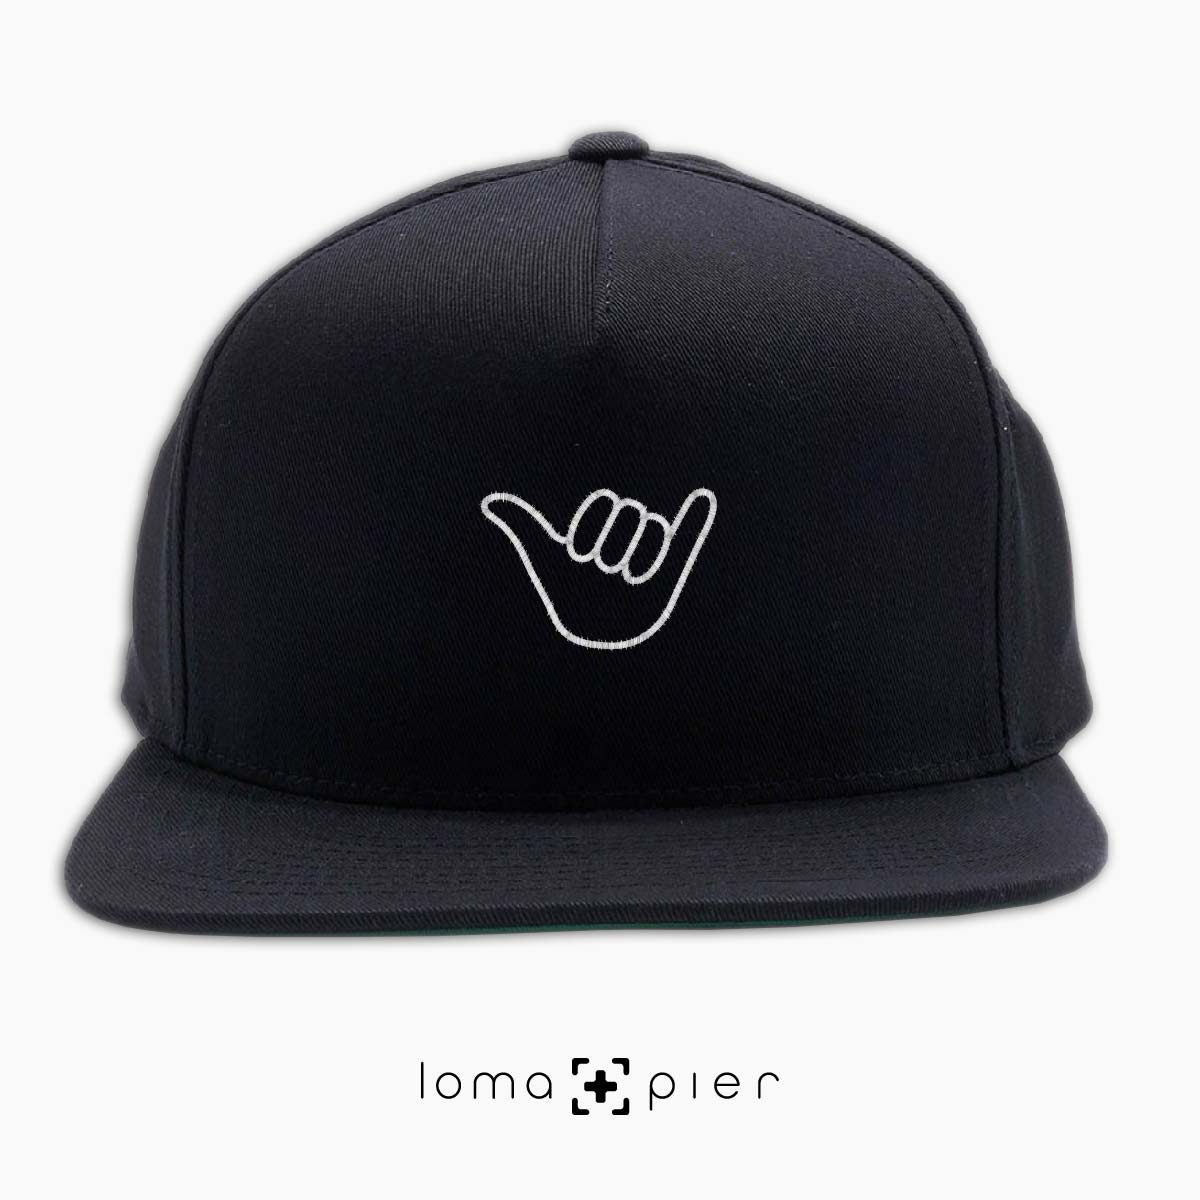 HANG LOOSE icon embroidered on a black classic snapback hat by loma+pier hat store